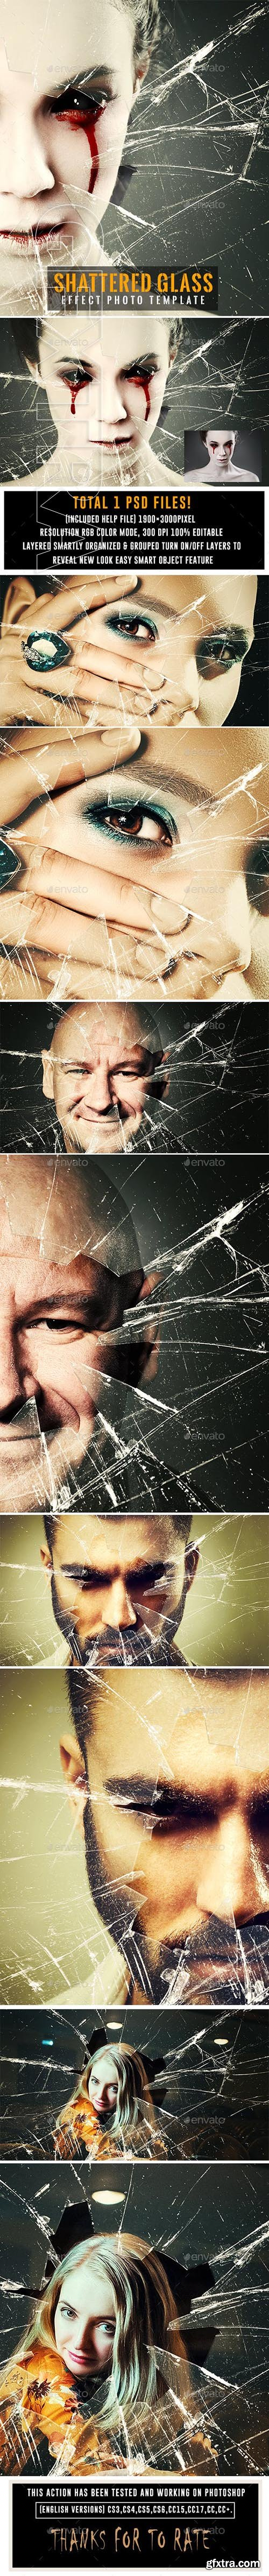 GraphicRiver - Shattered Glass Effect Photo Template 23700524